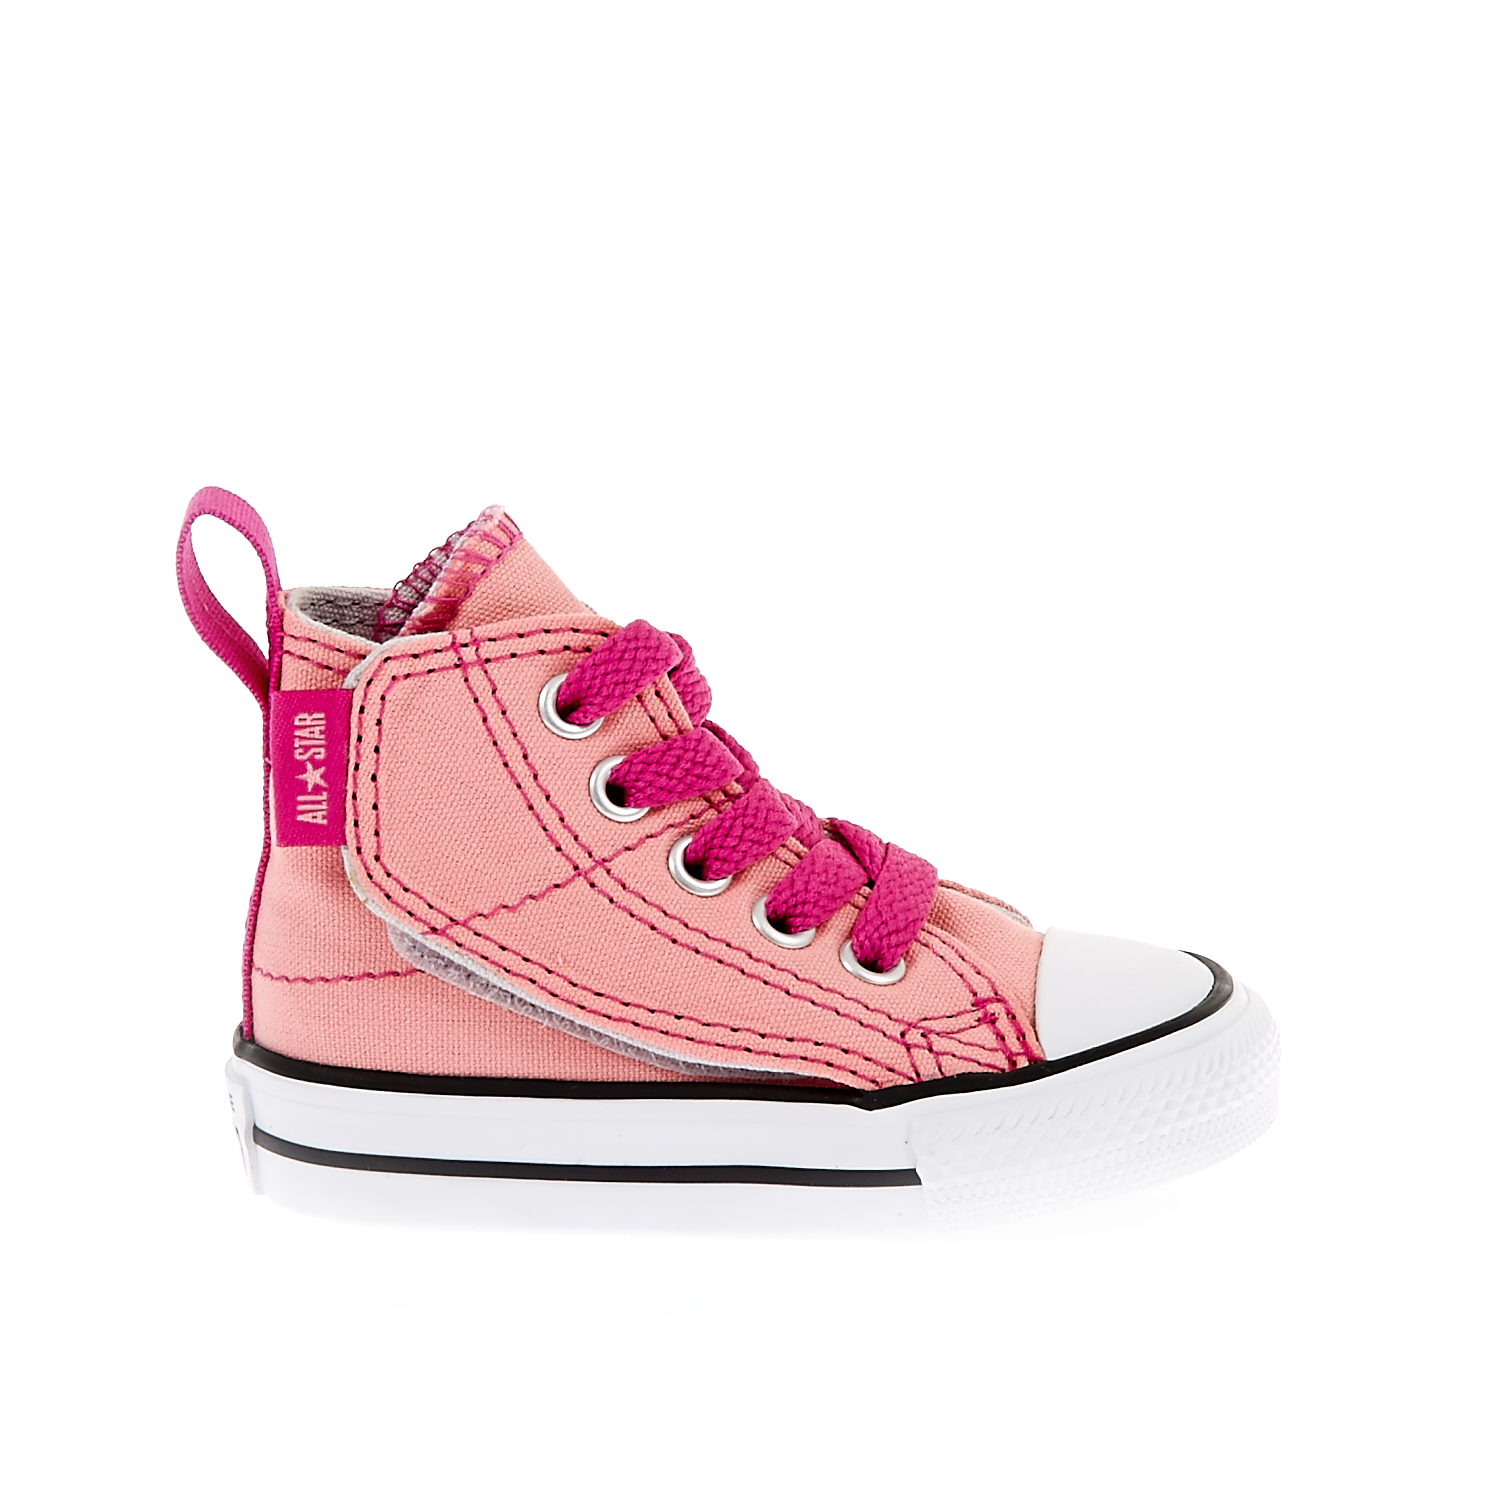 CONVERSE – Βρεφικά παπούτσια Chuck Taylor All Star Simple S ροζ